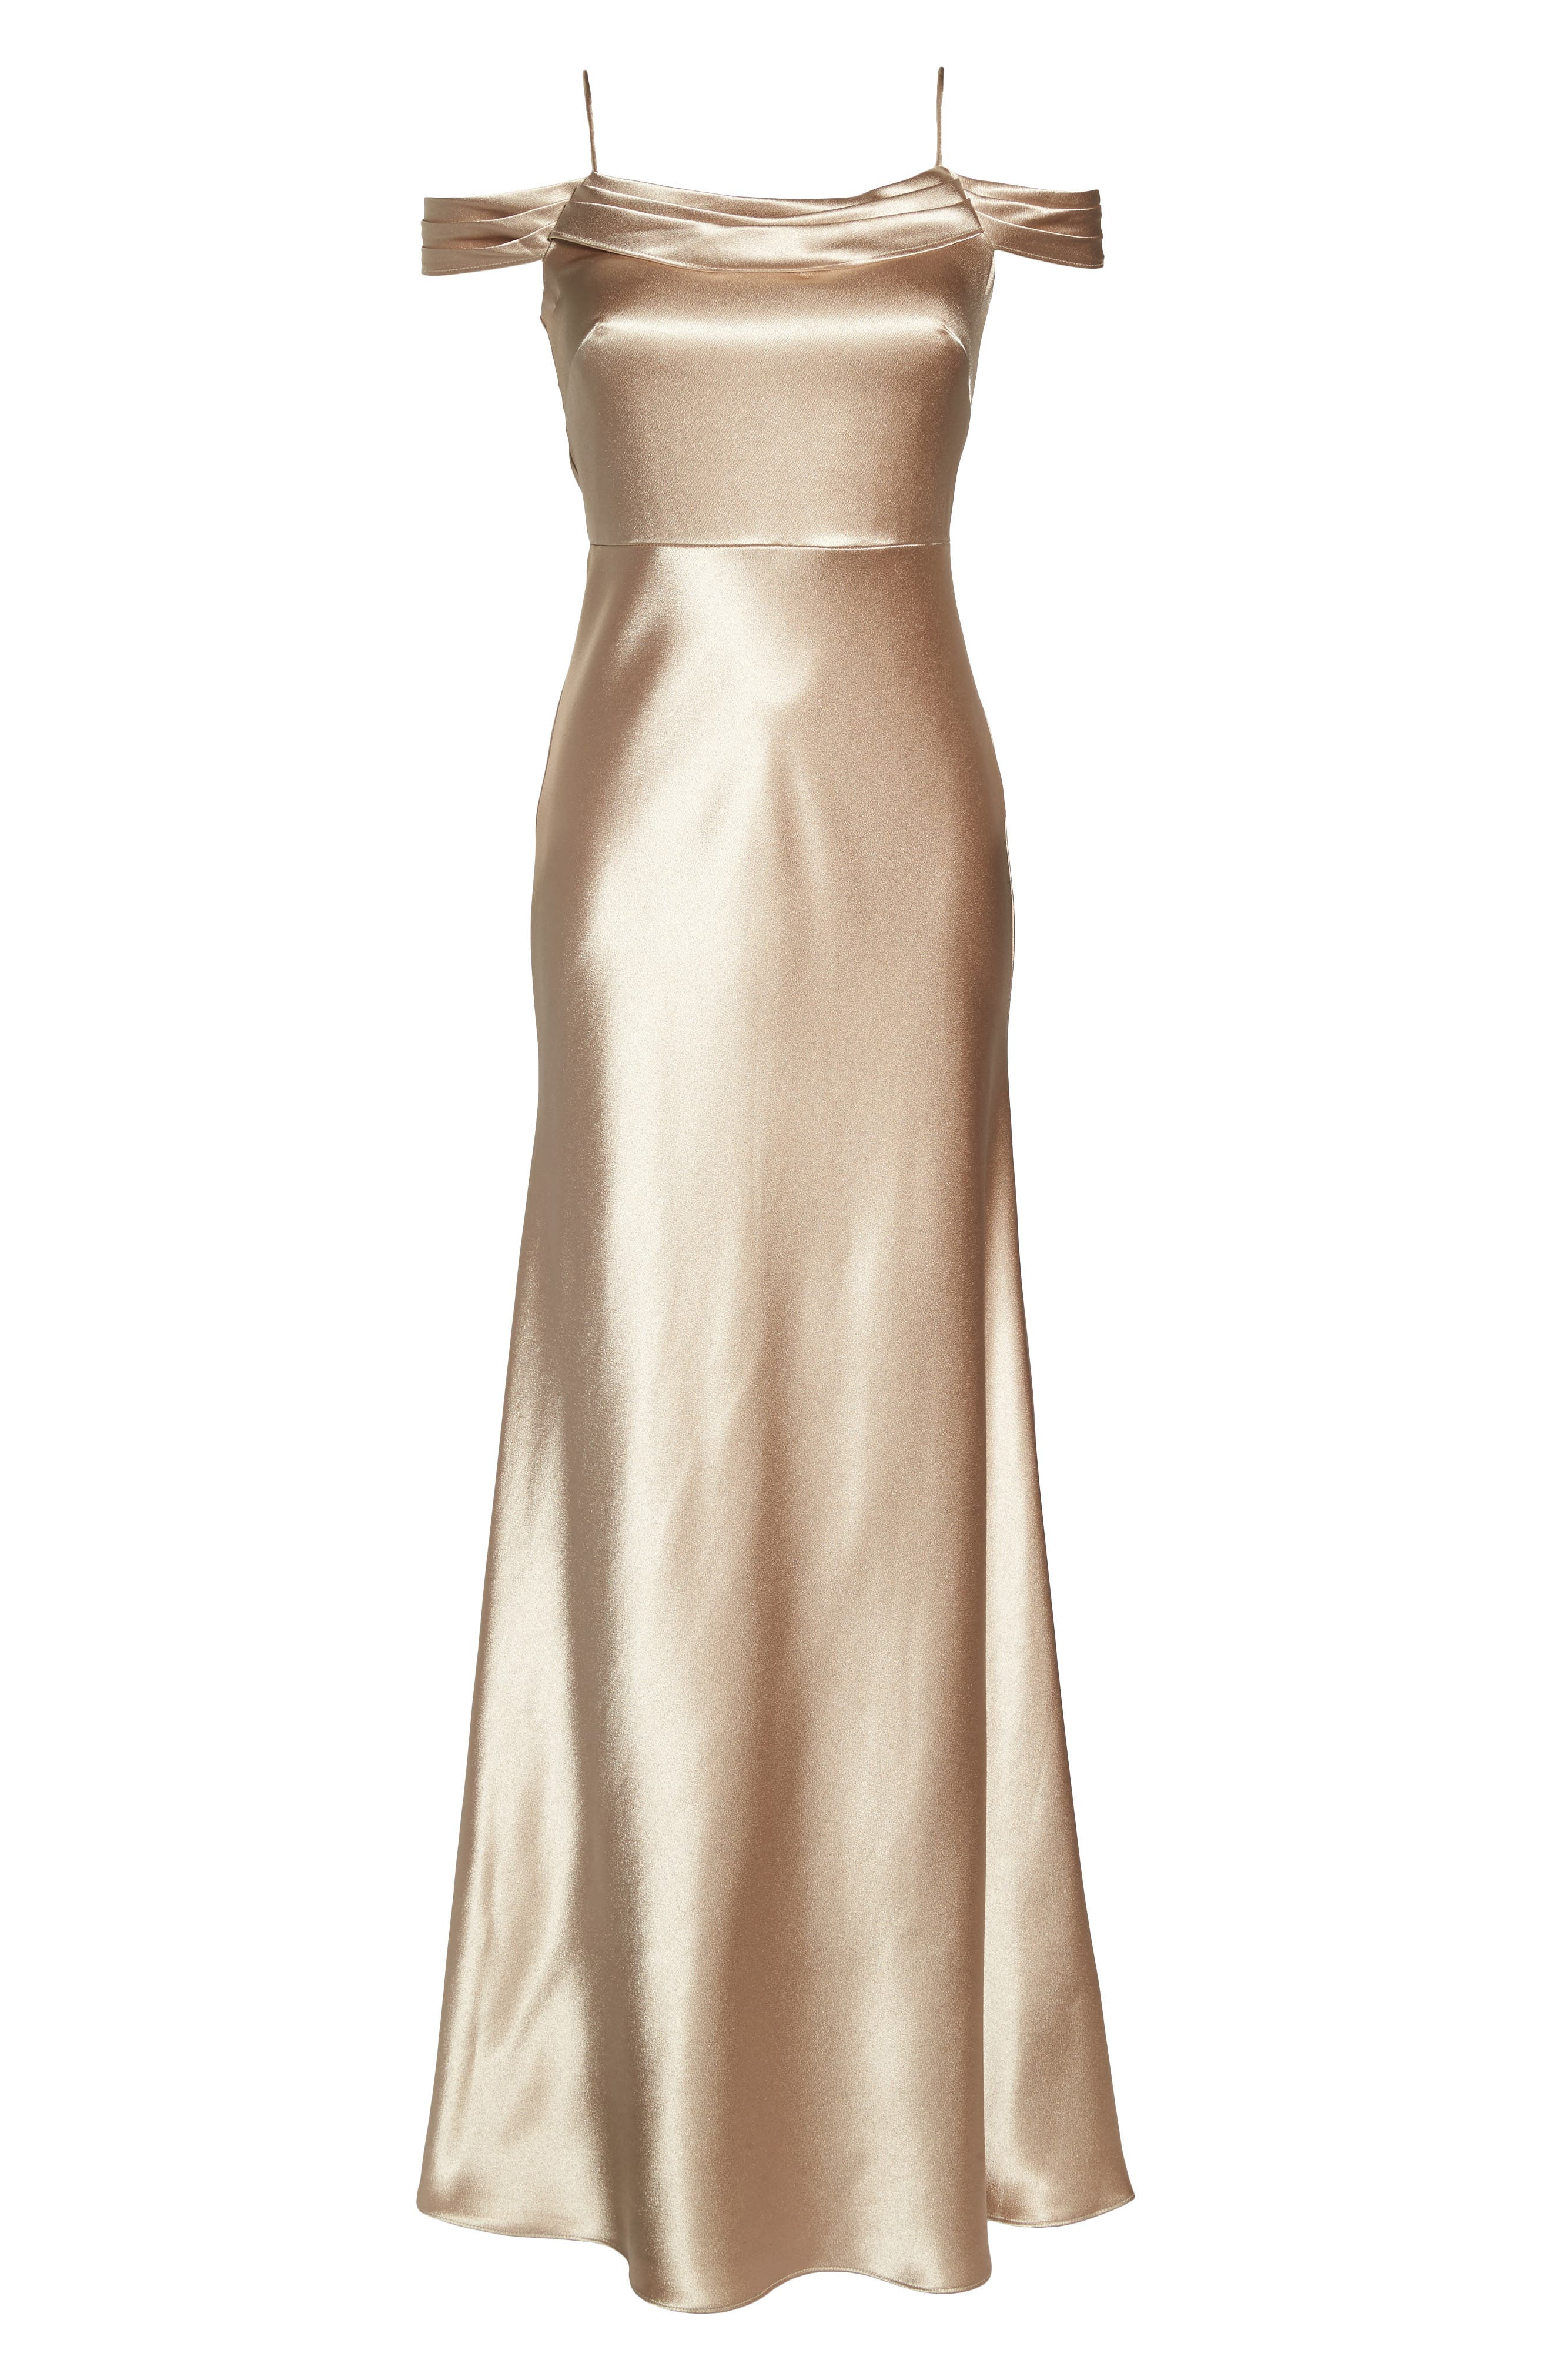 JENNY YOO, Serene Satin Off the Shoulder Gown, Alternate thumbnail 6, color, LATTE